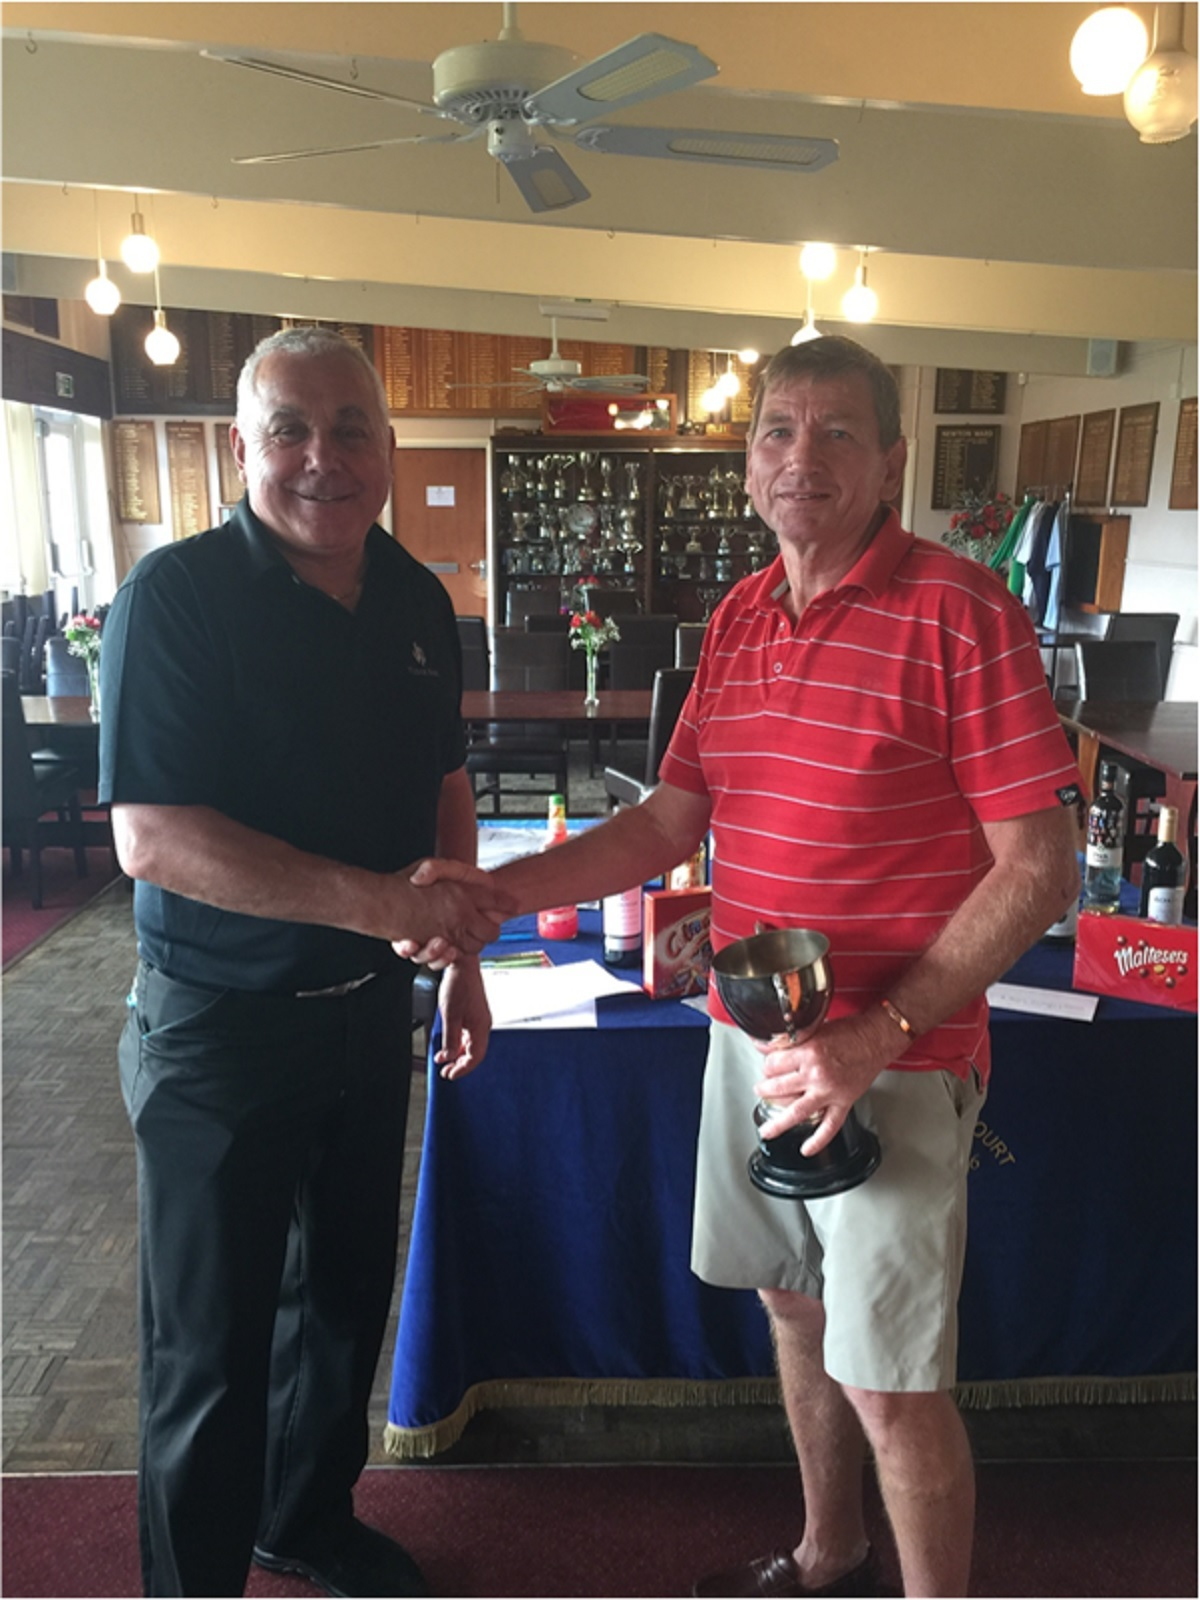 Worthy cause - Terry Woodward receives the Plonkers Cup from Lee Rodger. The event raised more than £800 for Cancer Research